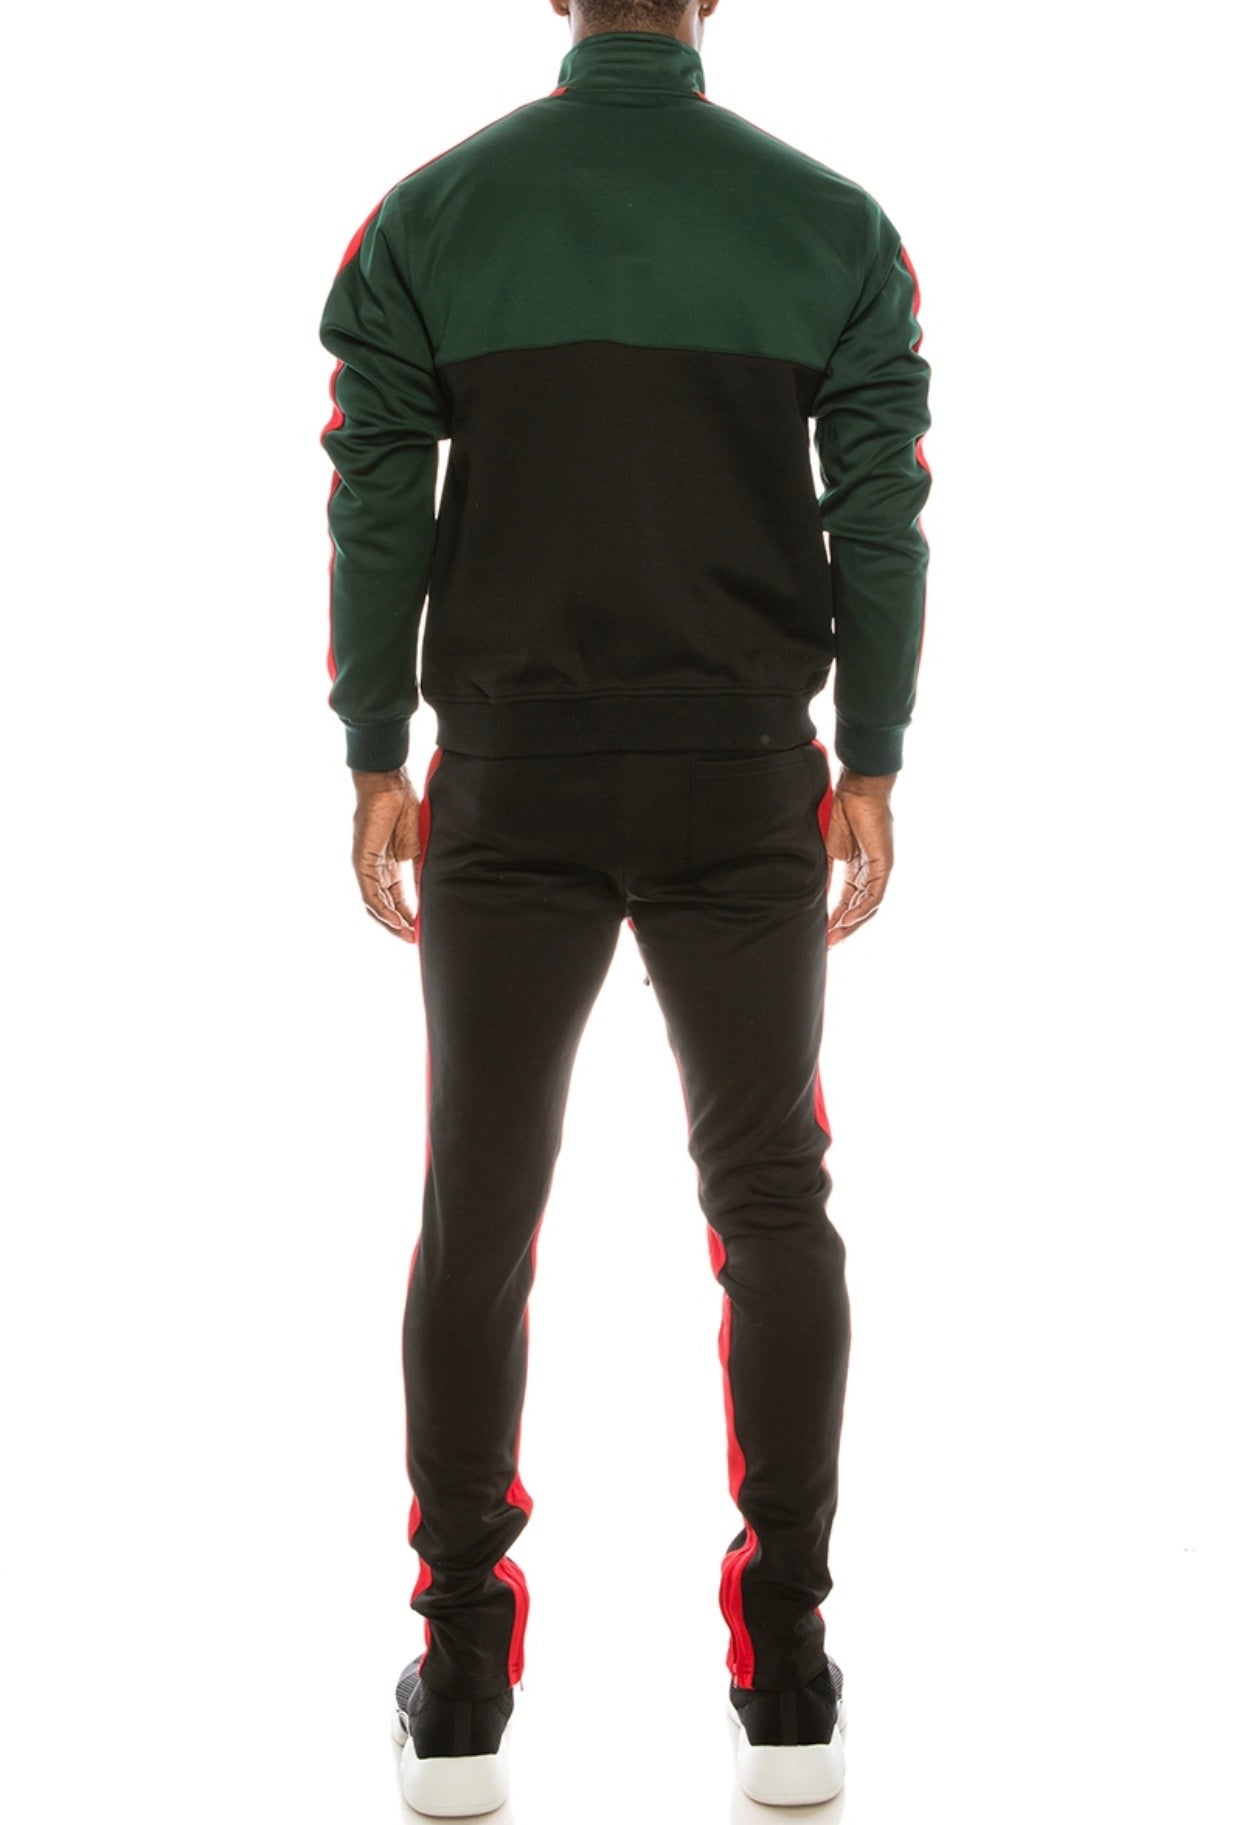 VICTORY TRACKSUIT (FULL SUIT)